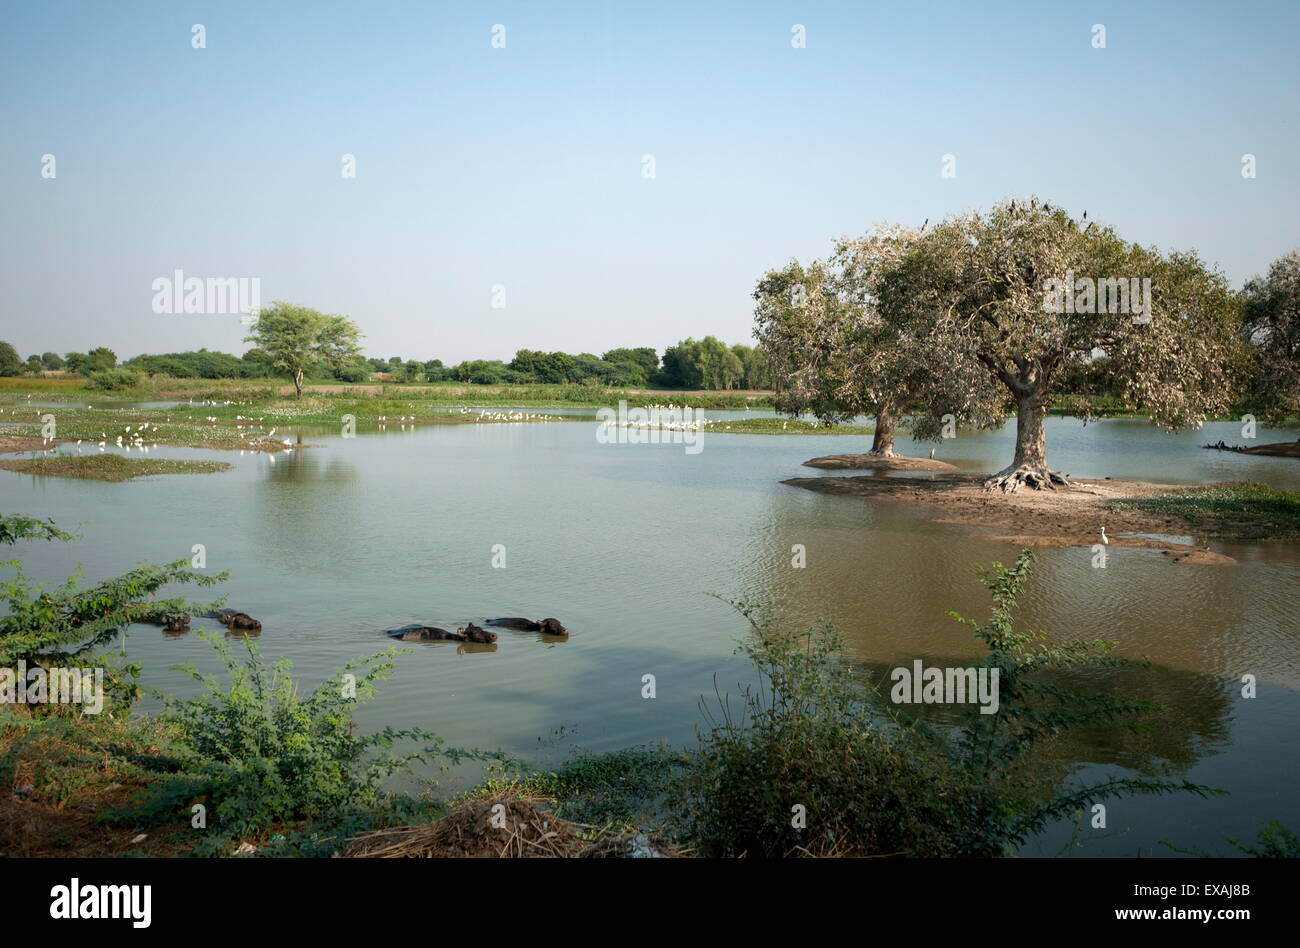 Buffalo wade through a rural village pond lined with egrets, Dasada district, Gujarat, India, Asia - Stock Image